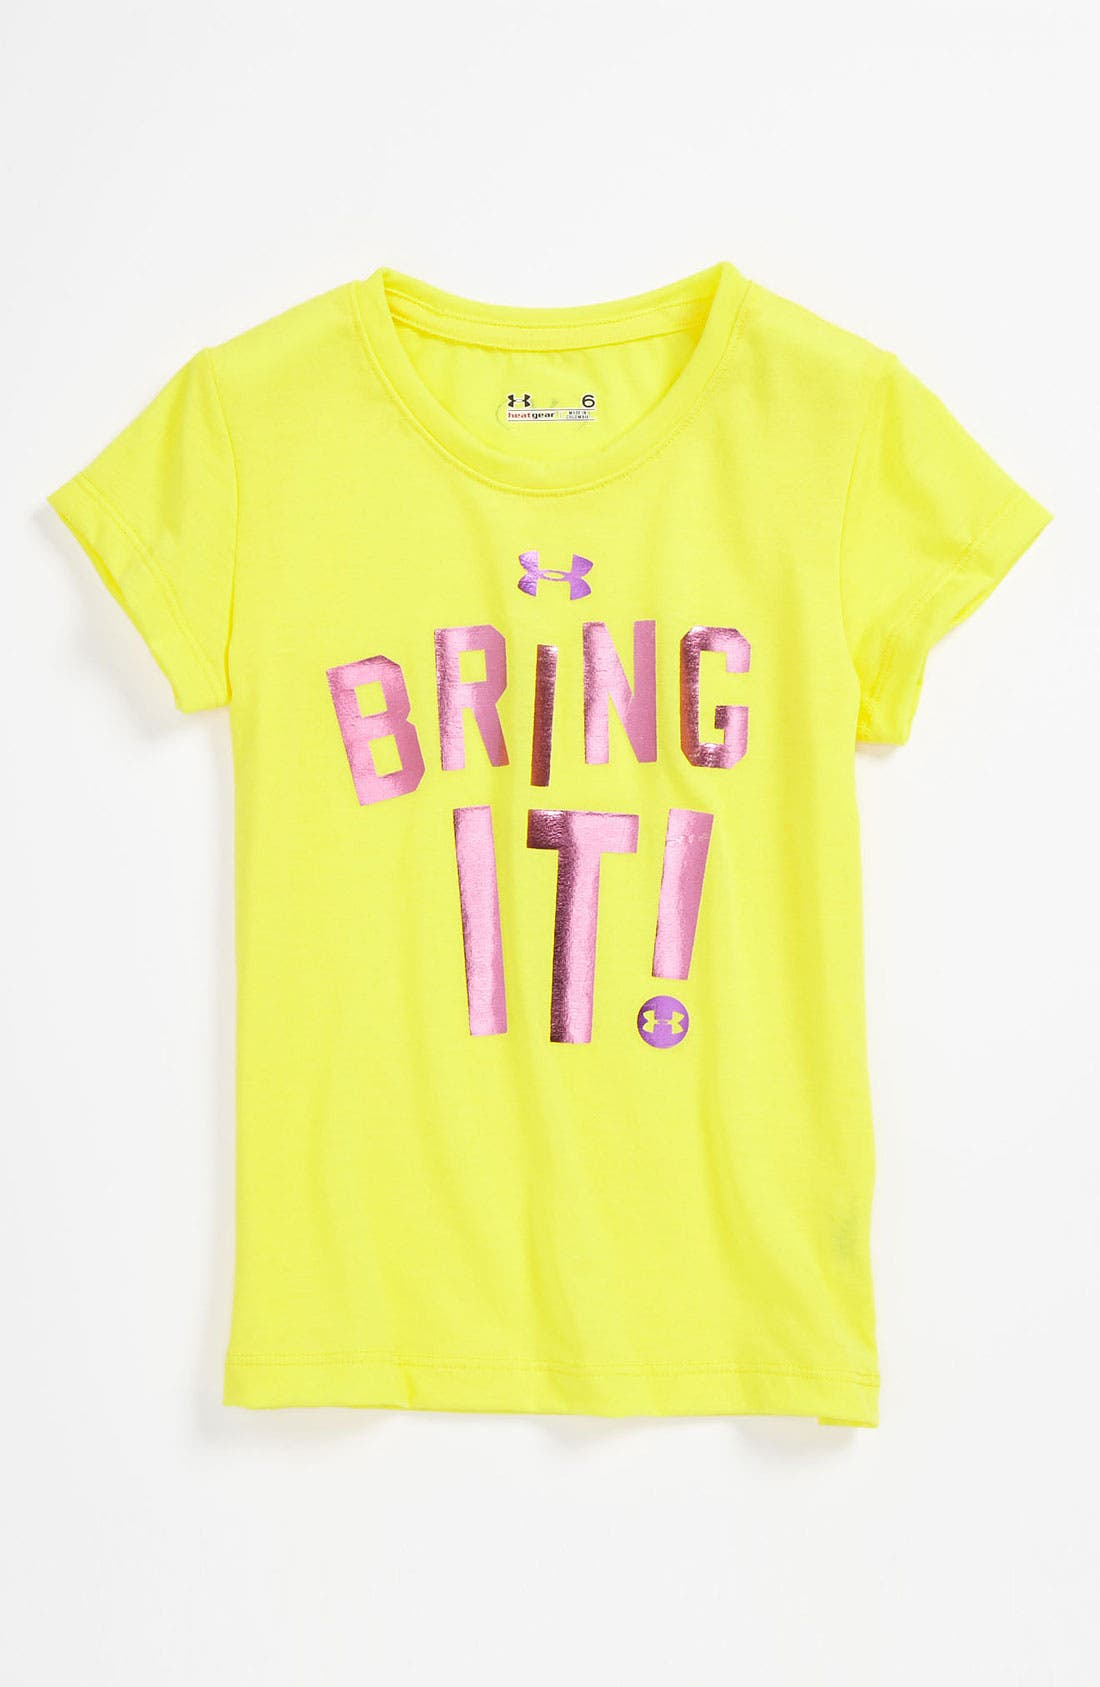 Main Image - Under Armour 'Bring It!' Tee (Little Girls)